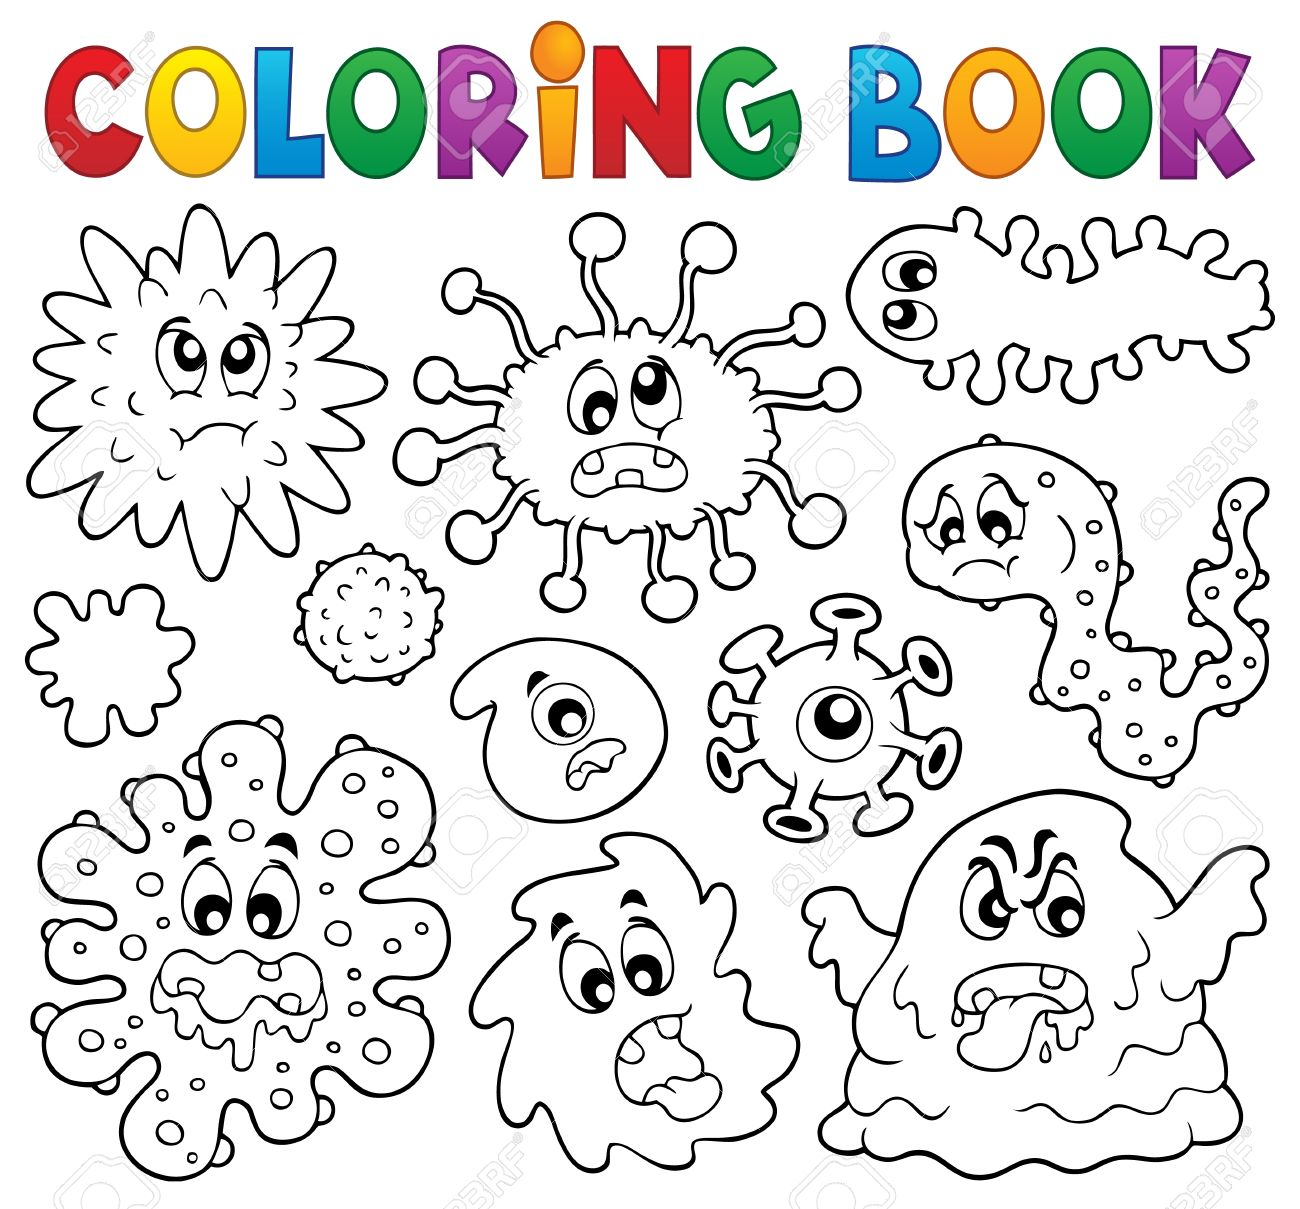 Coloring Book Germs Theme Illustration Royalty Free Cliparts ...